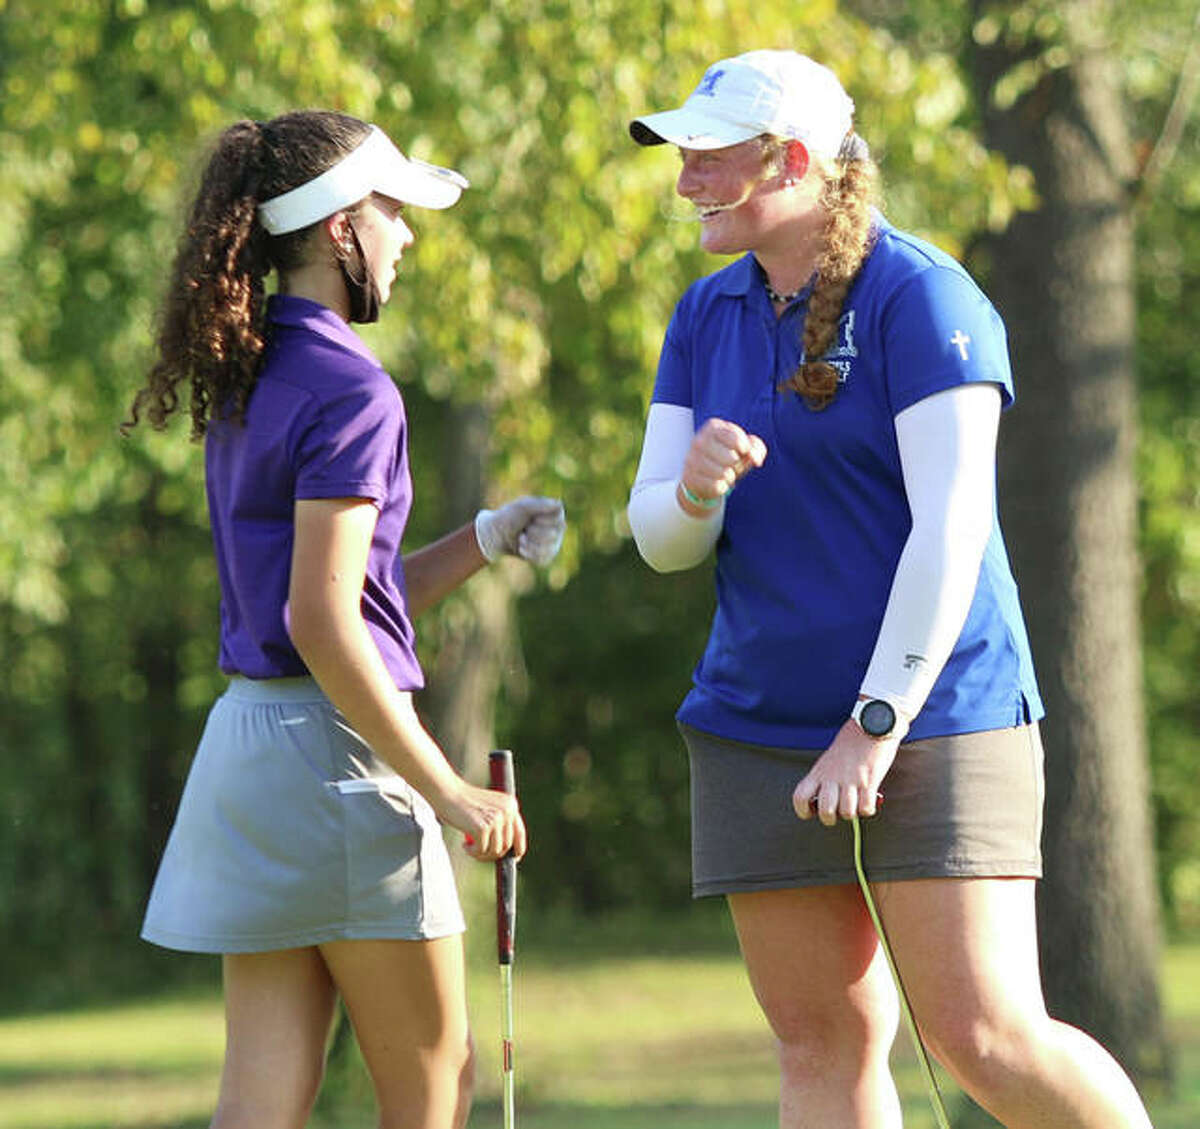 Marquette Catholic's Gracie Piar (right) greets CM's Sophee Brown after Brown sank a putt on the 18th green to secure CM's runner-up finish behind the host Explorers in the Marquette Class 1A Regional at Olin. Both teams advance to Monday's sectional at Salem.